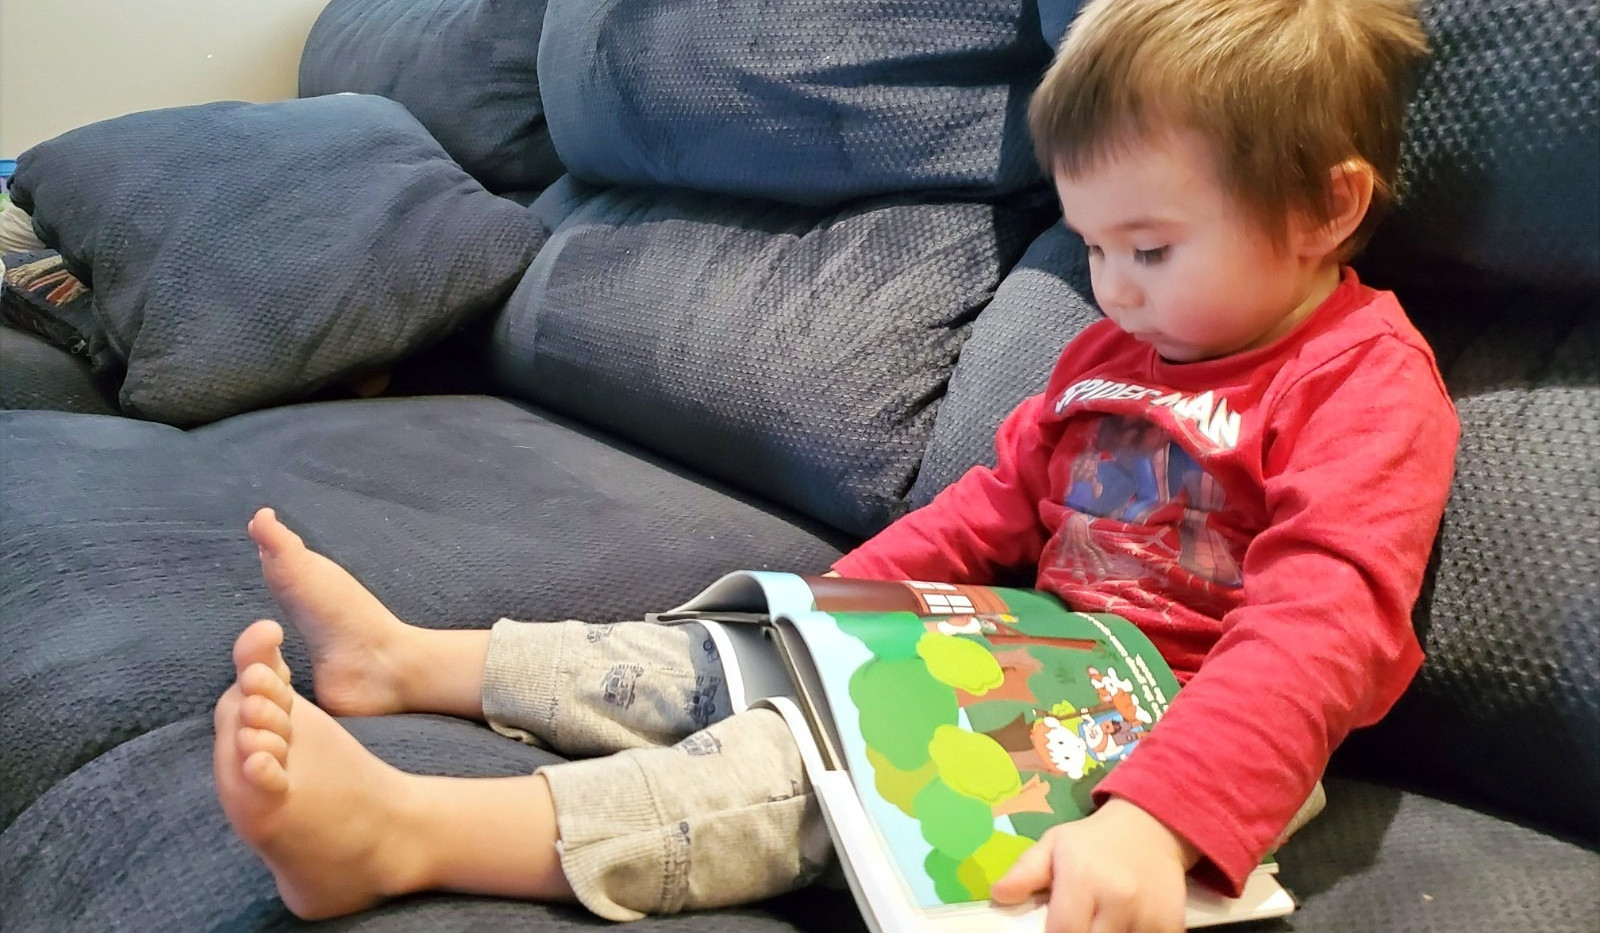 A little boy that has a storybook on his lap reading.